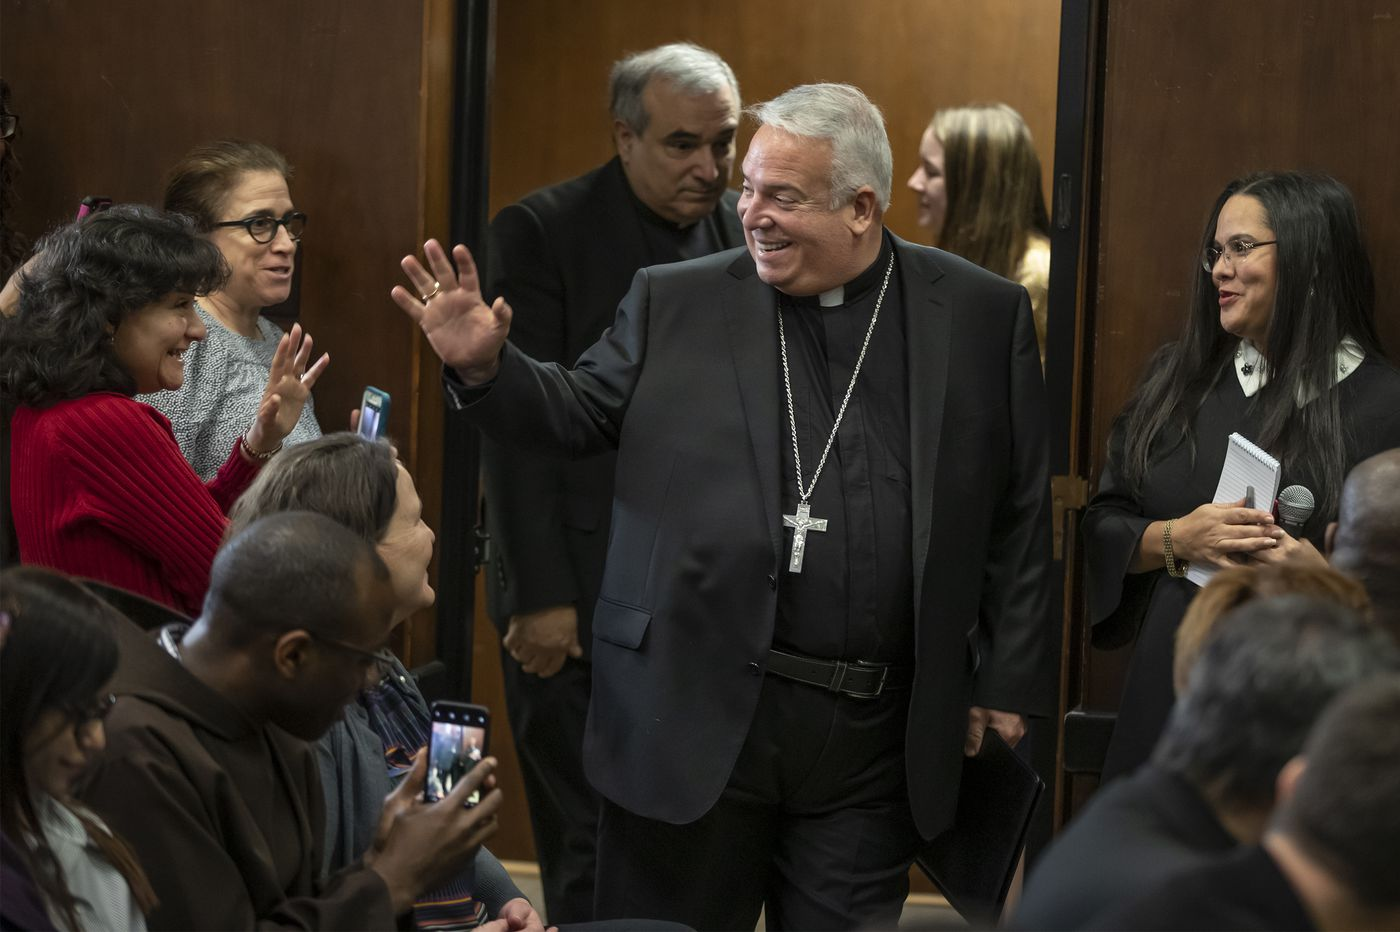 Nelson Pérez's appointment as archbishop brings speculation and celebration for Philly-area Catholics